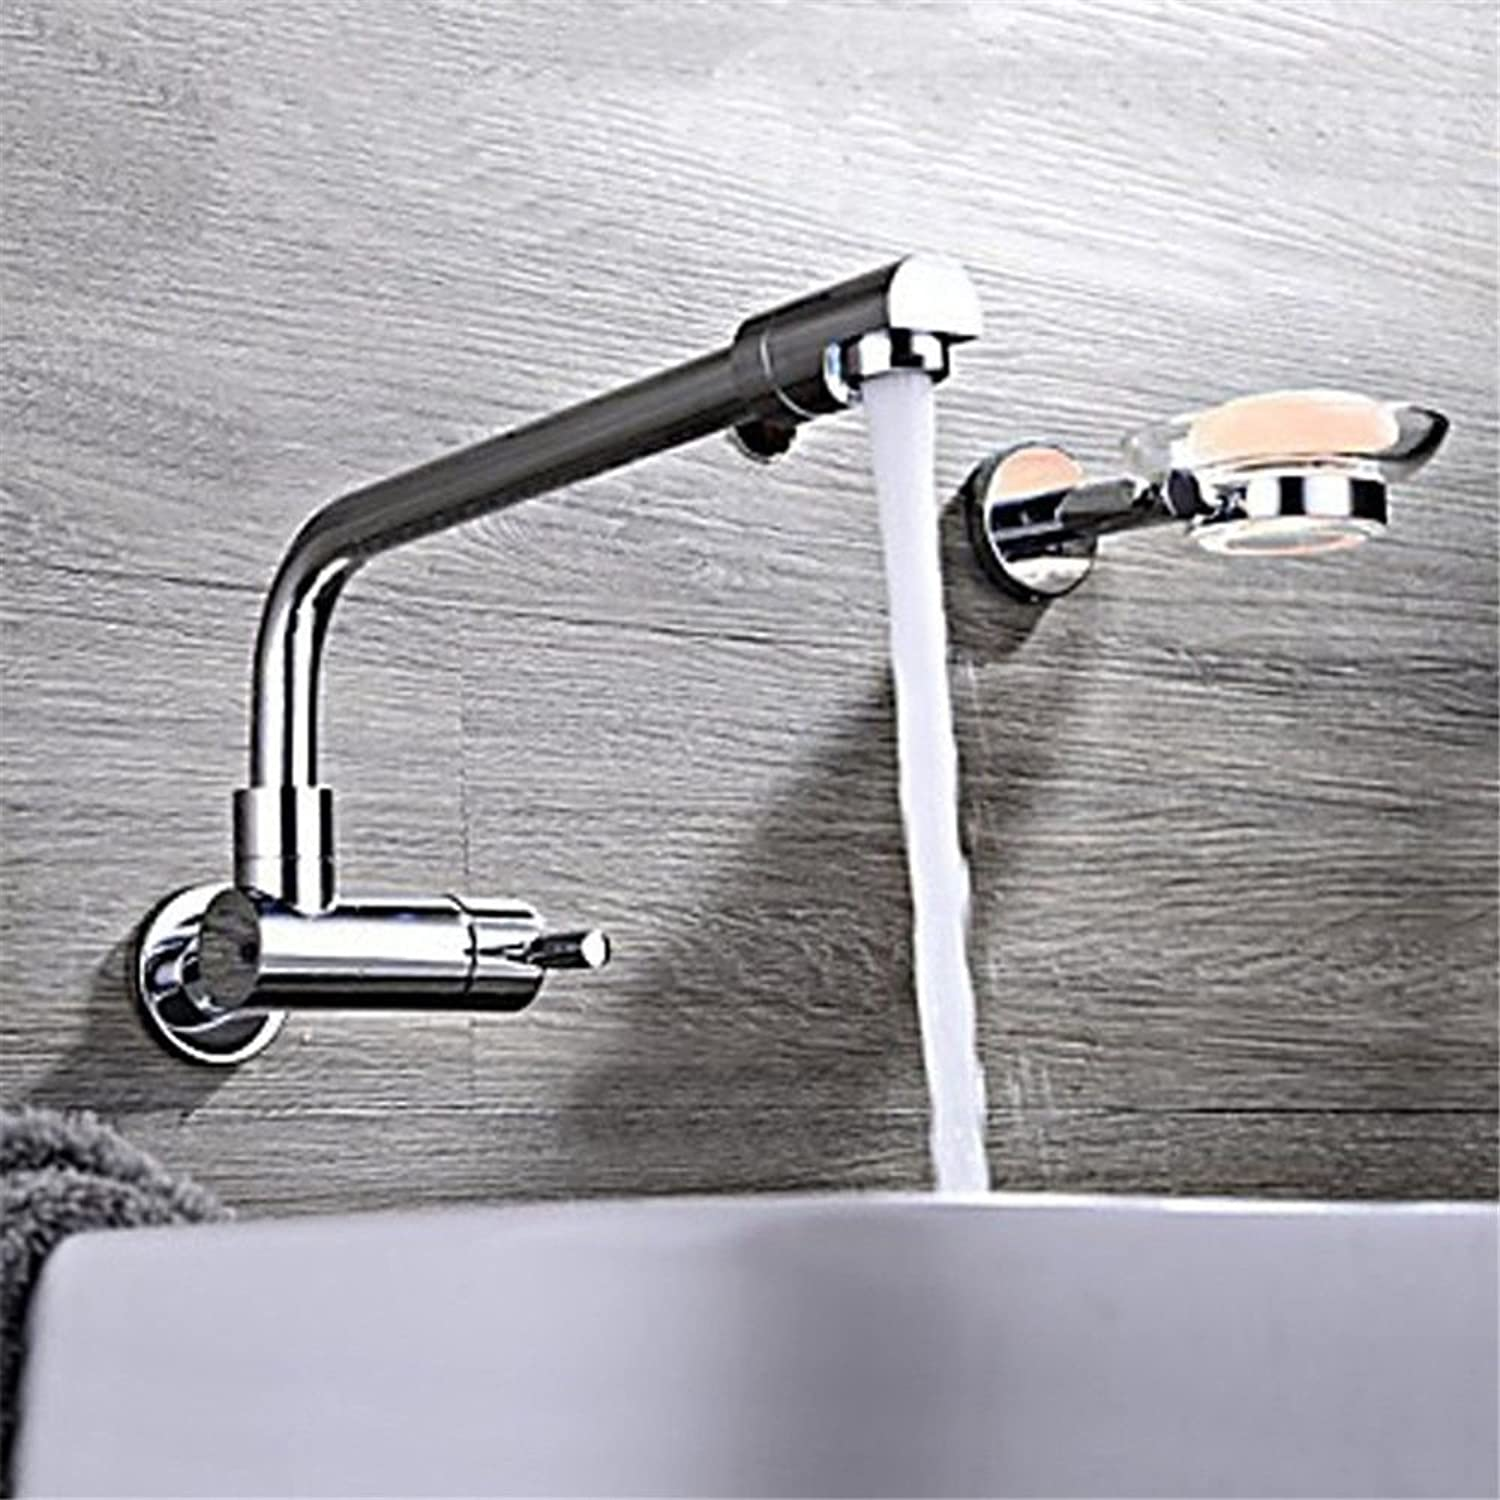 Hlluya Professional Sink Mixer Tap Kitchen Faucet The copper basin and cold water faucet chrome plated basin Mixer Taps single lead-in into the wall